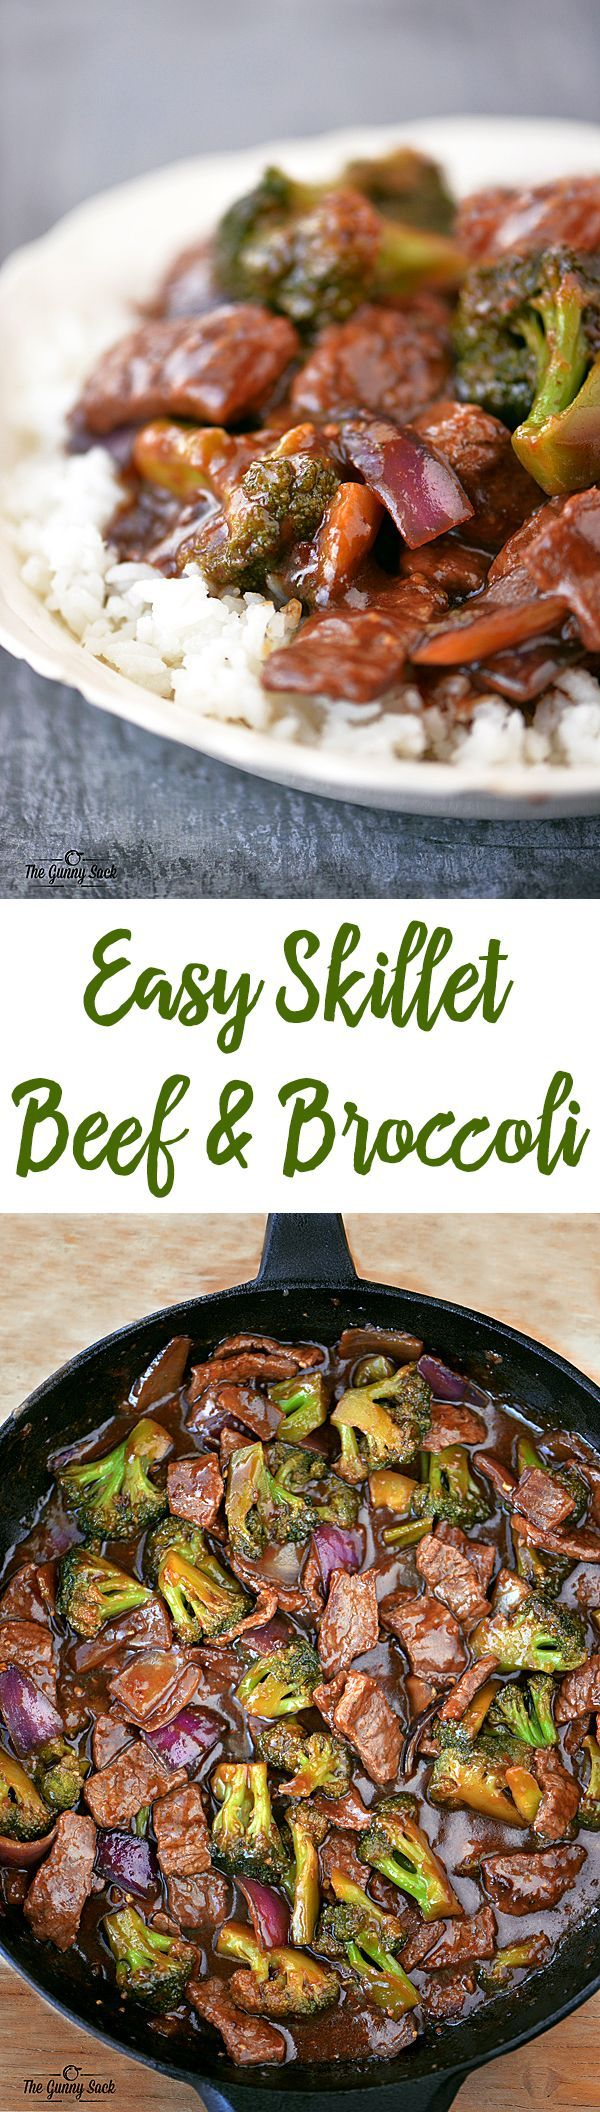 This Easy Skillet Beef and Broccoli recipe is better than take out and is ready in less than 30 minutes!